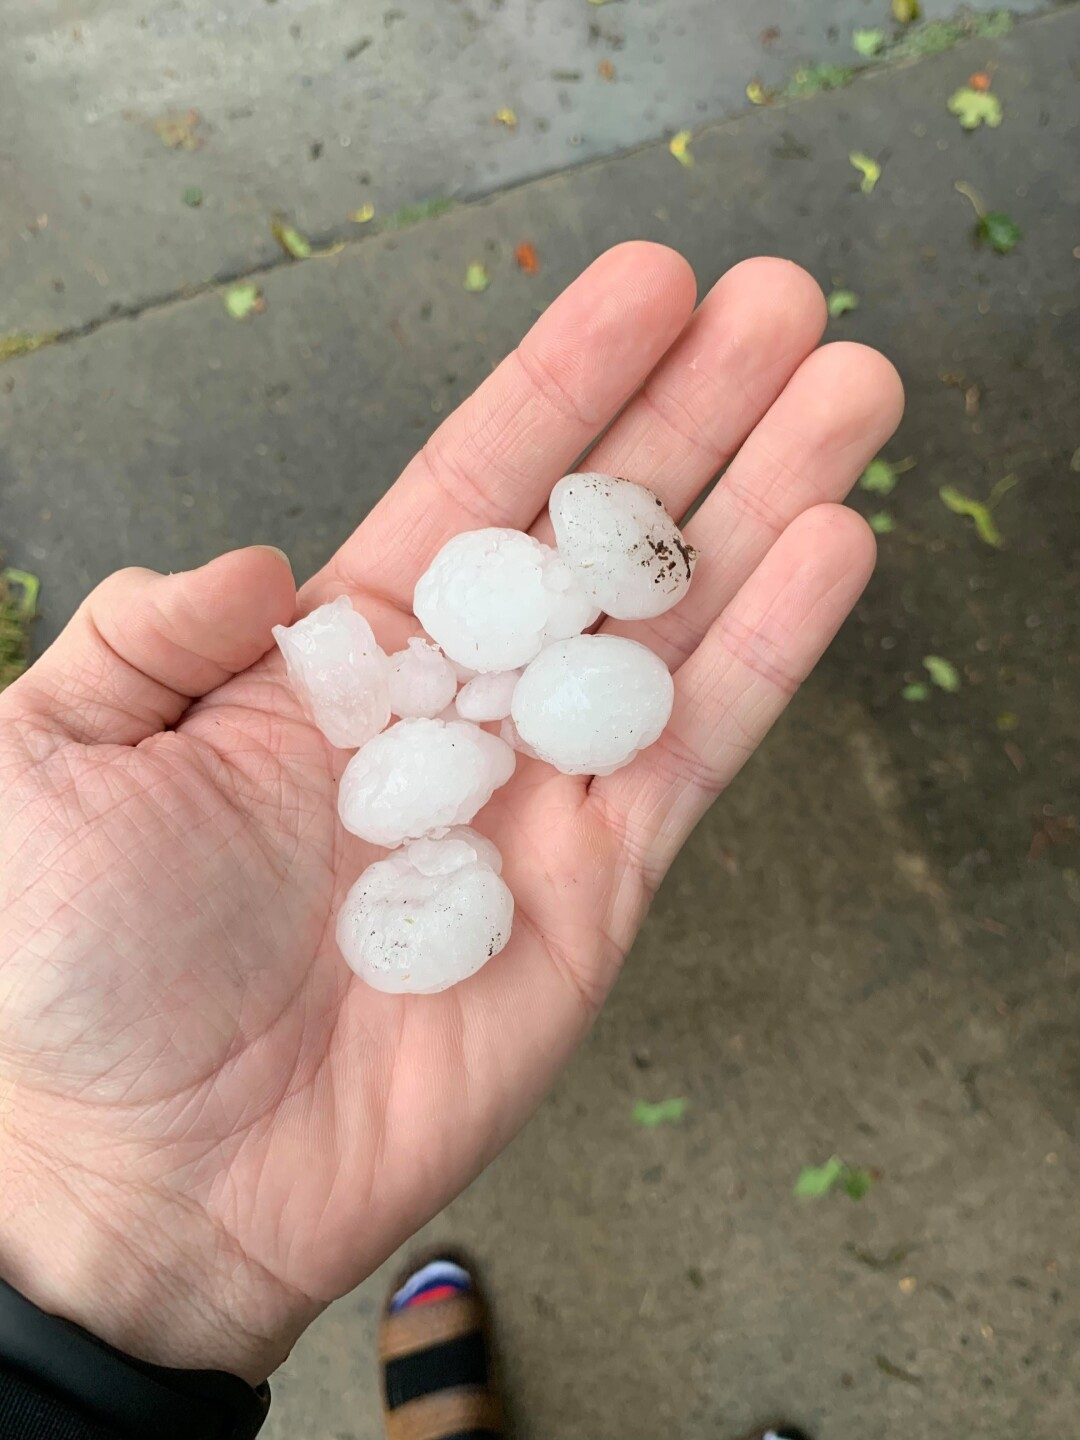 Photos: Thunder and hail storms hit northern Utah